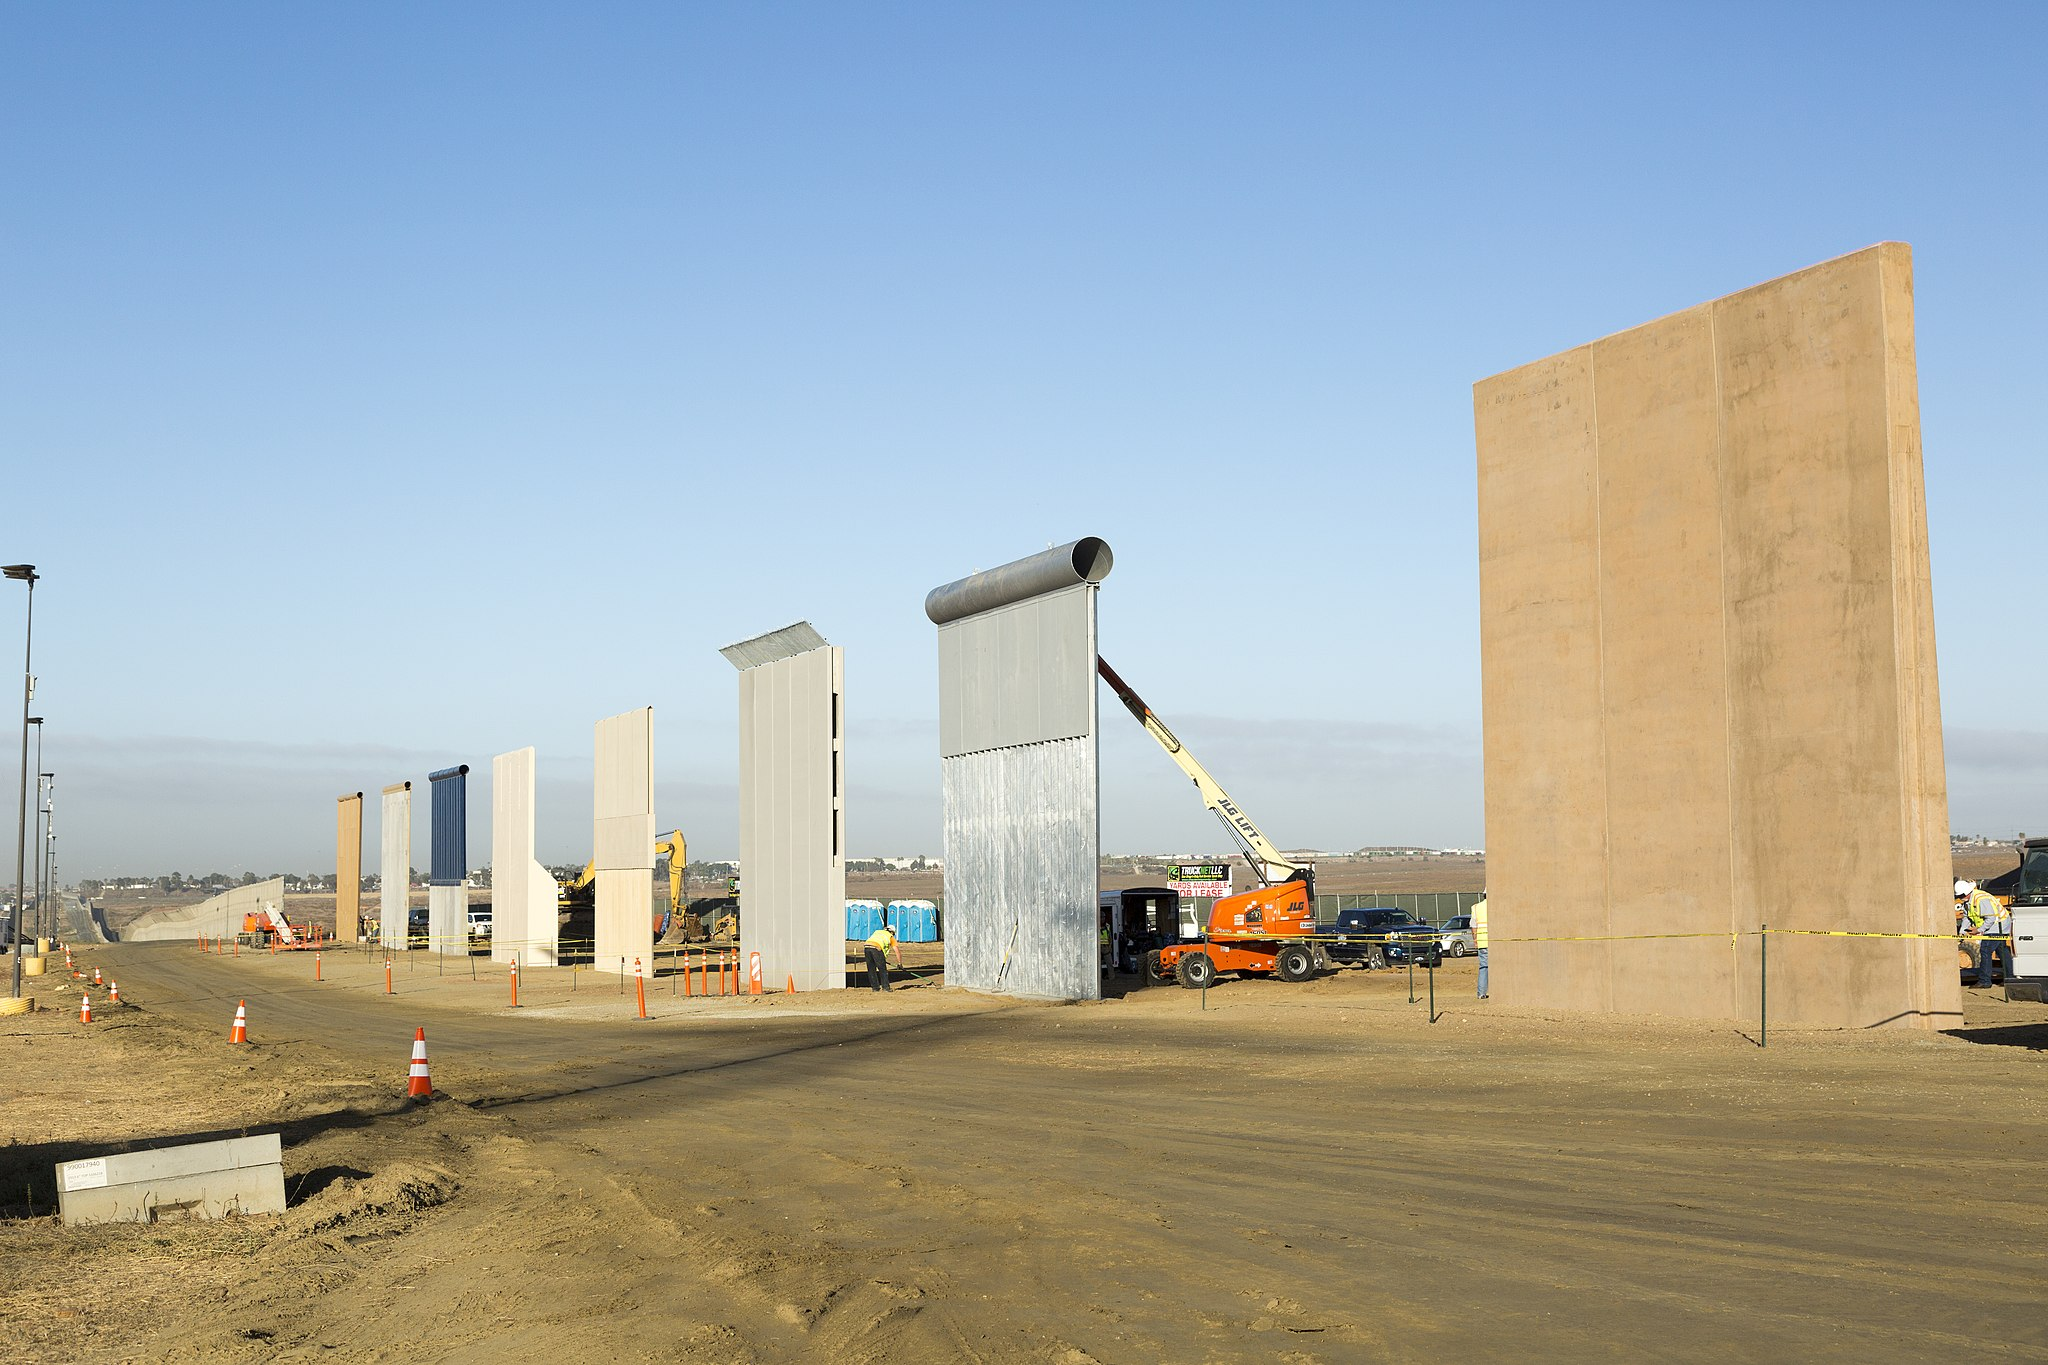 Ground views of different Border Wall Prototypes as they take shape during the Wall Prototype Construction Project near the Otay Mesa Port of Entry...Photo by: Mani Albrecht